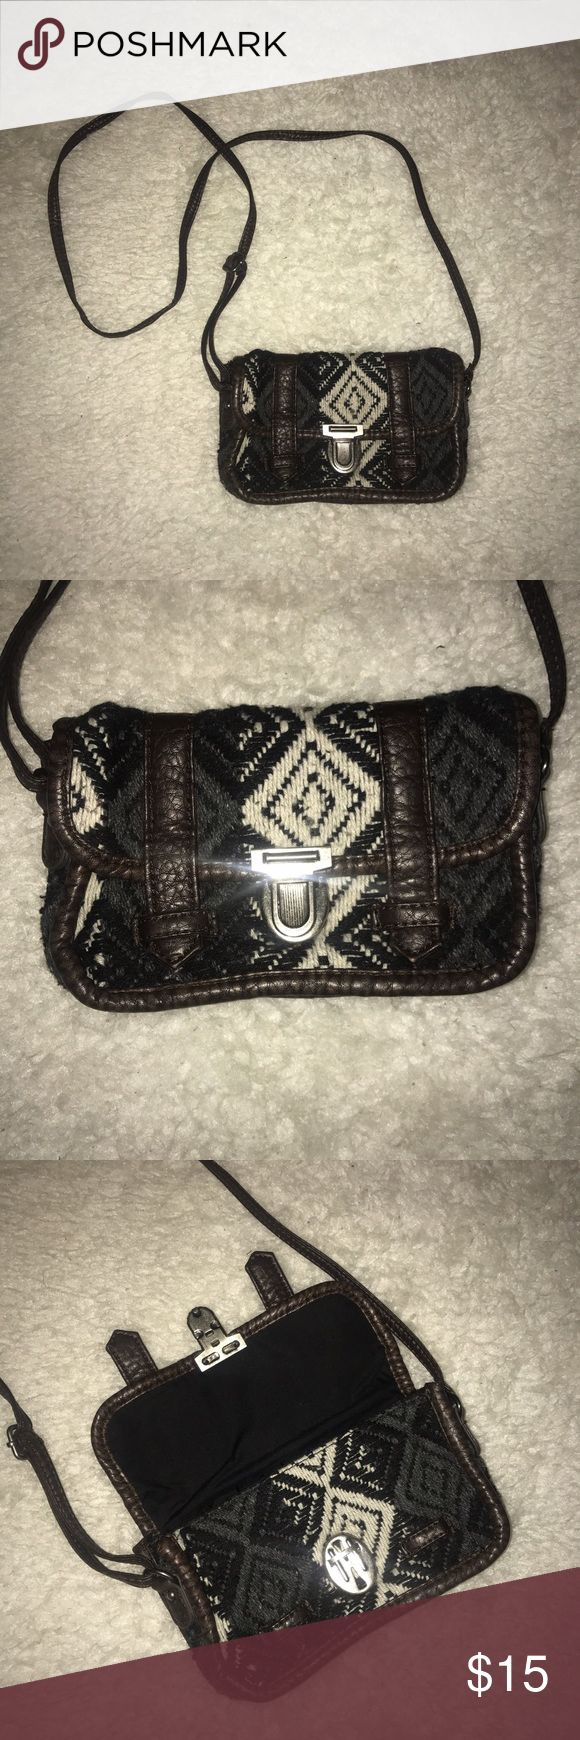 American Eagle cross body purse Super cute American eagle cross body purse! Aztec design with woven fabric. Super cute small purse for outings American Eagle Outfitters Bags Crossbody Bags